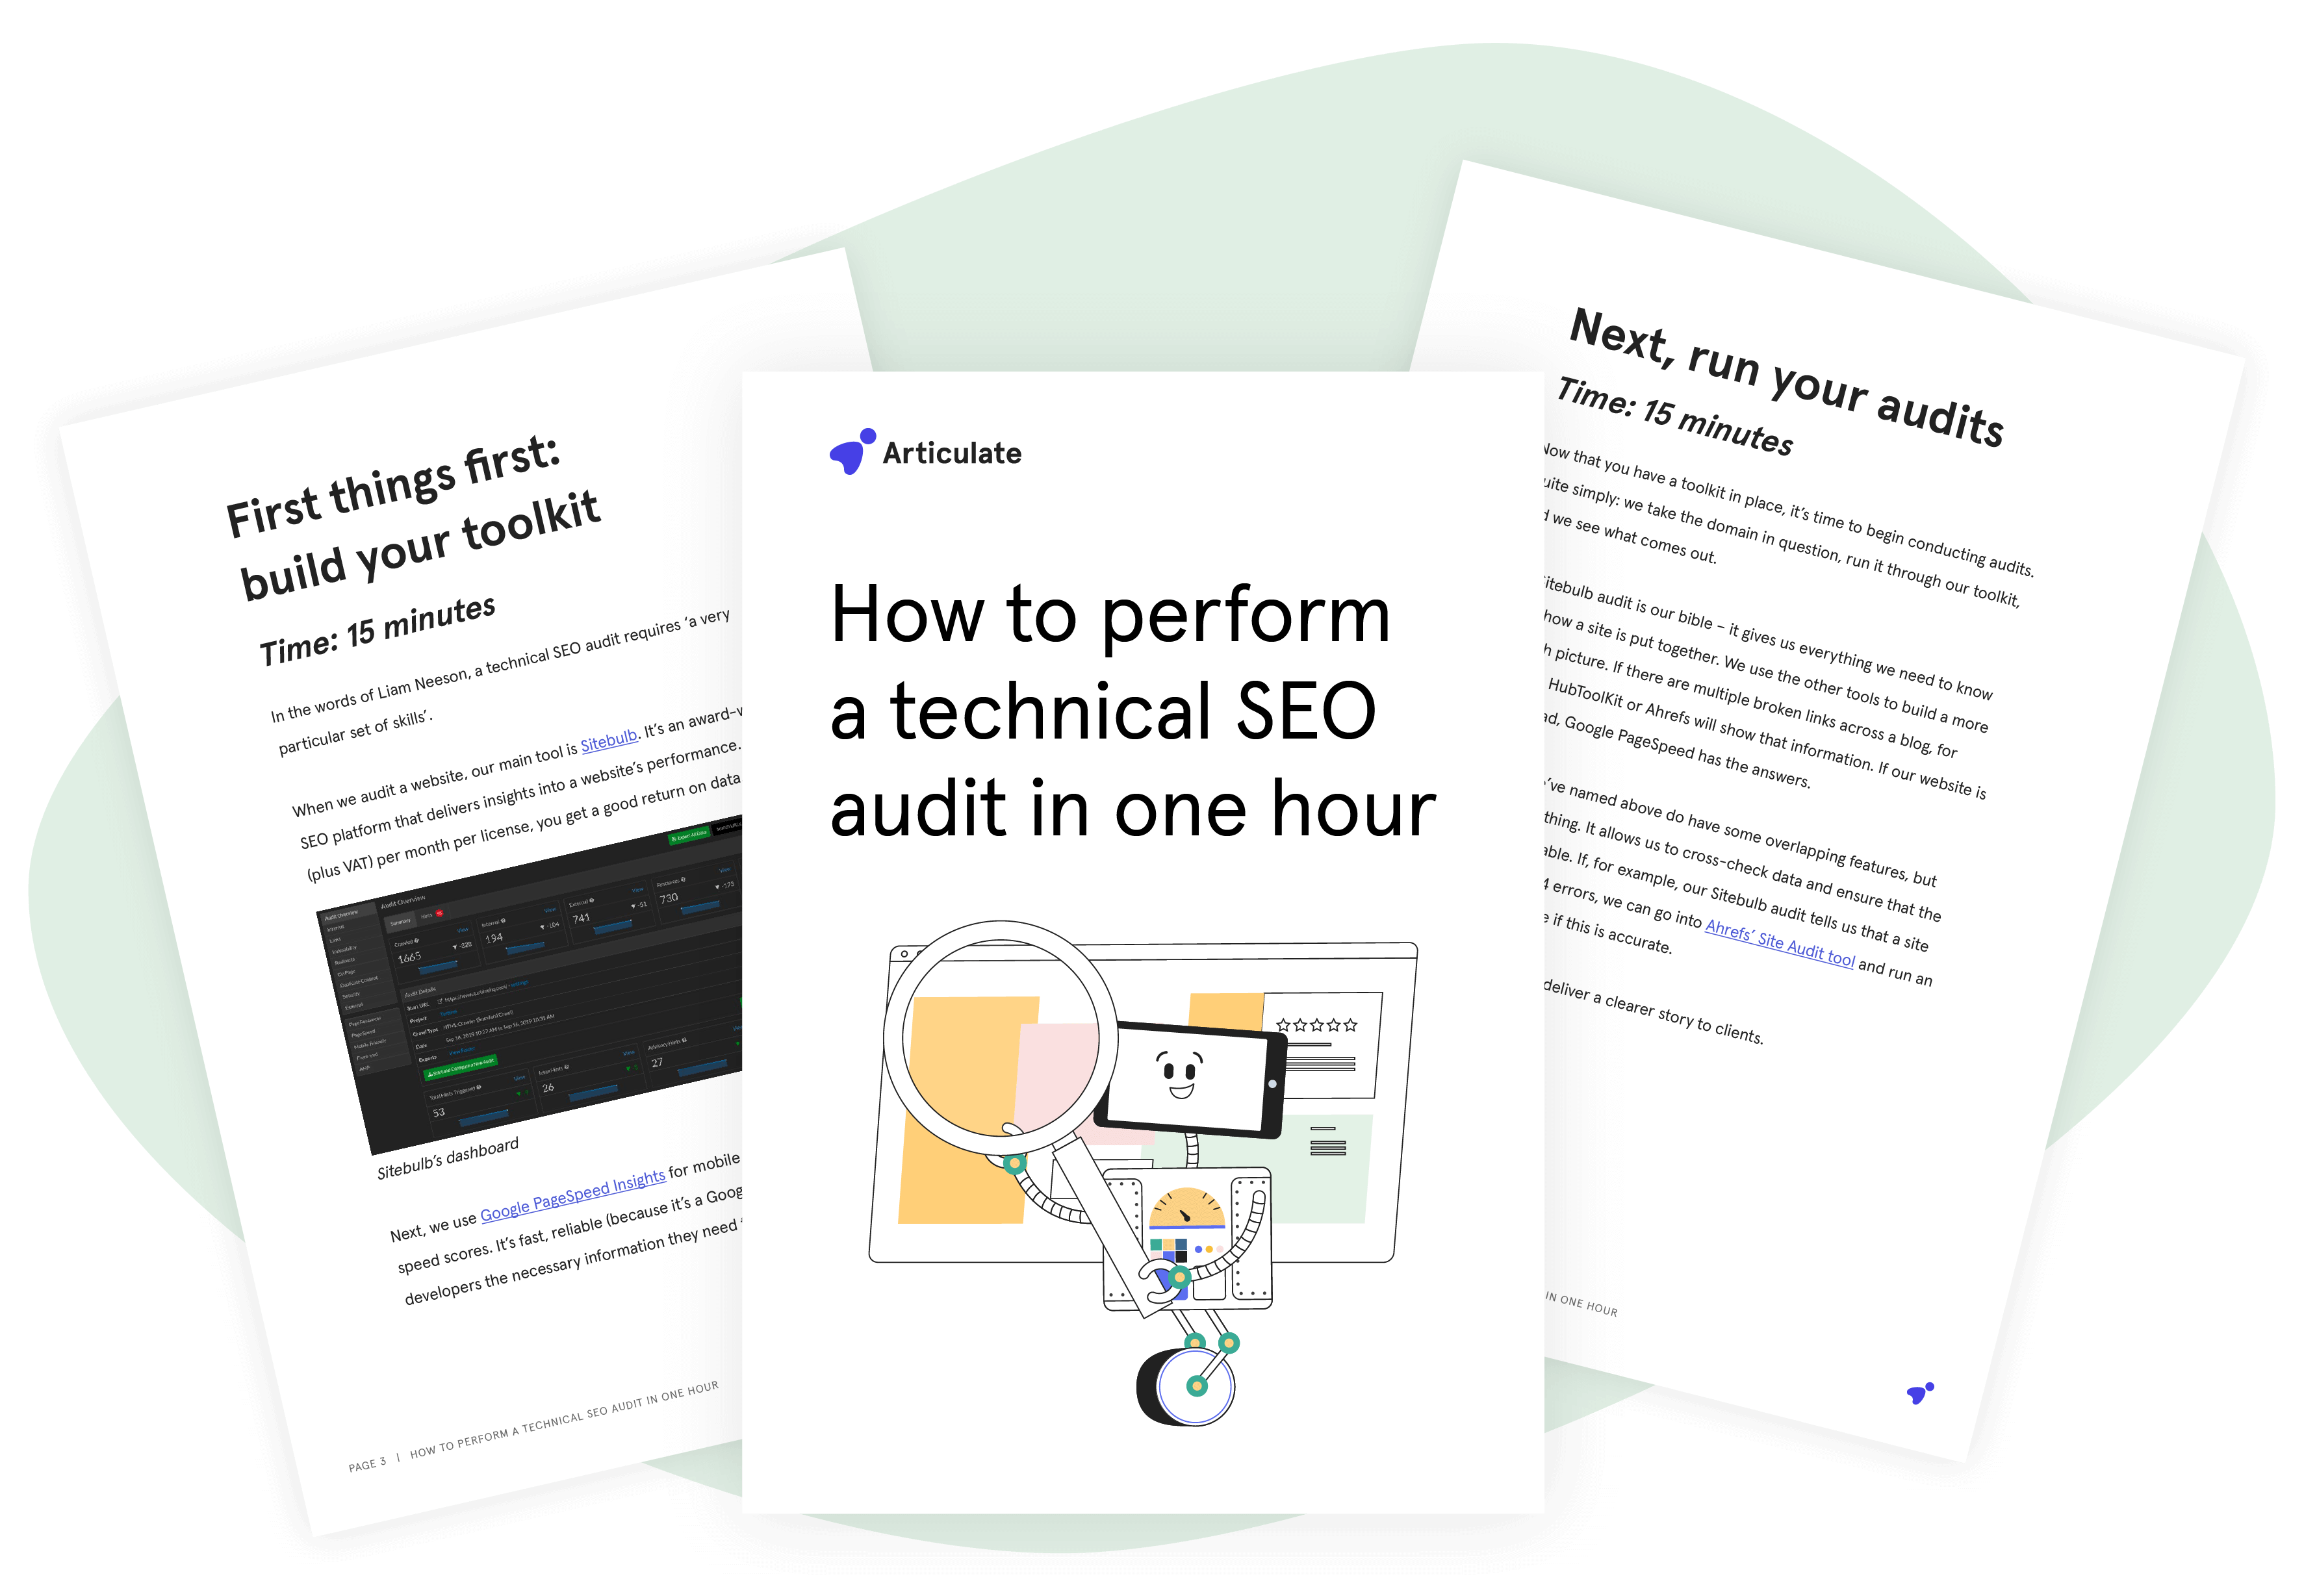 Articulate_How-to-perform-a-technical-SEO-audit-in-one-hour_Large_Mockup